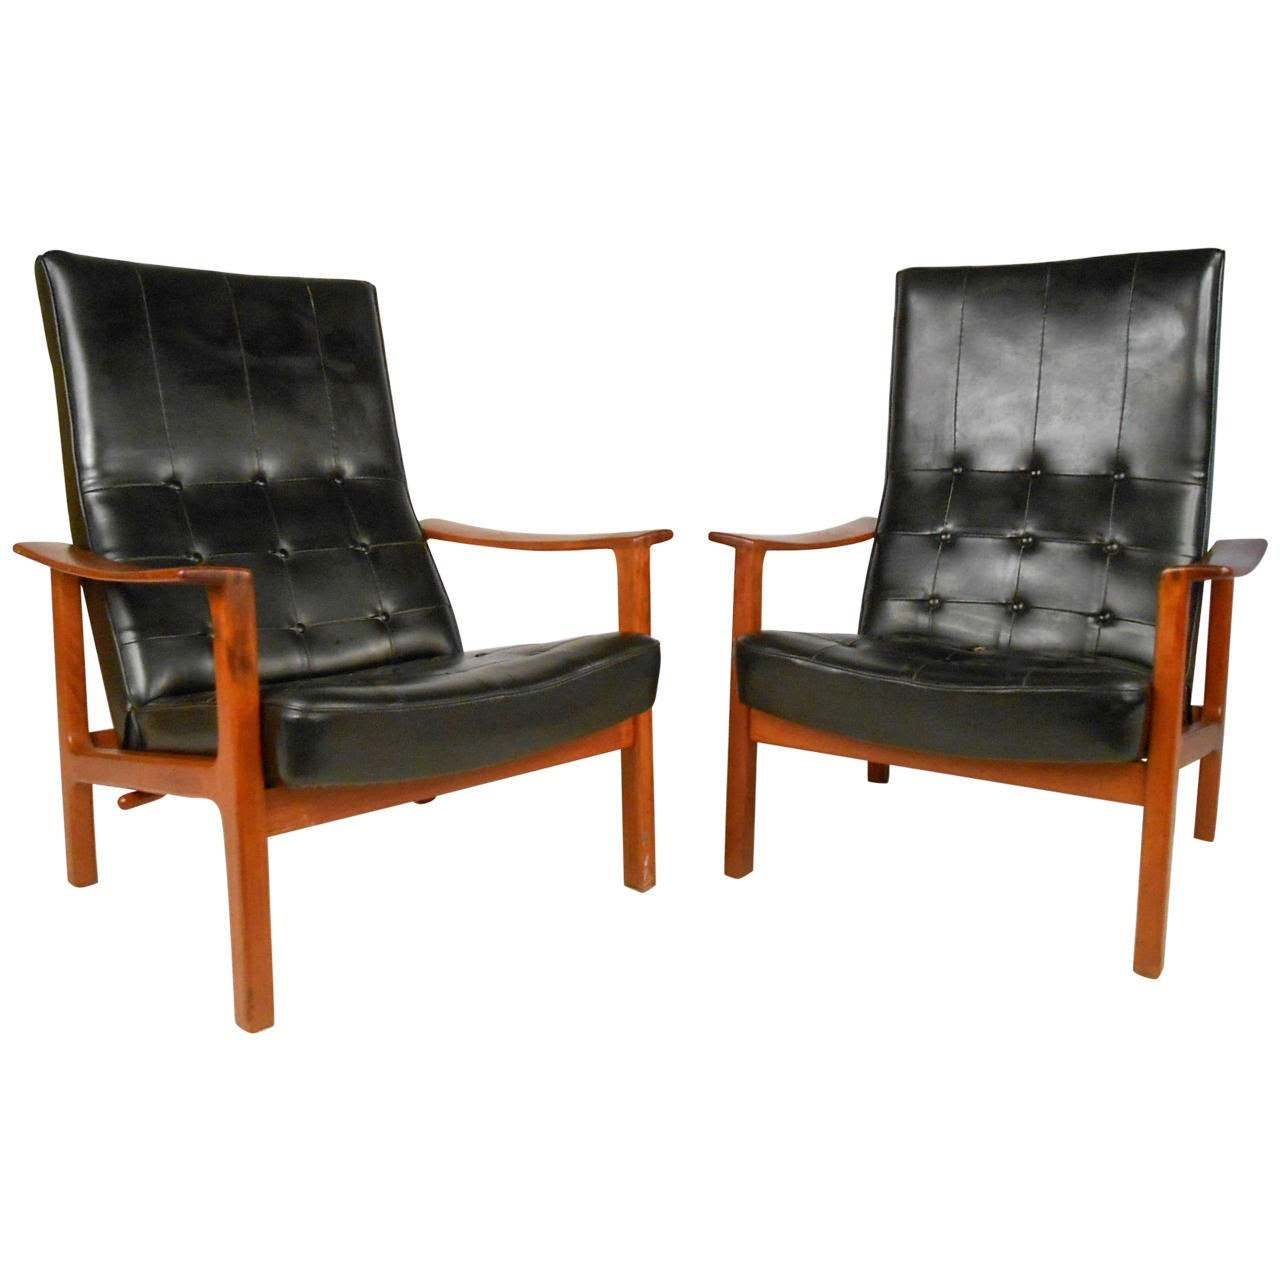 Unique Chair: Unique Pair Mid-Century Modern Bröderna Andersson Teak